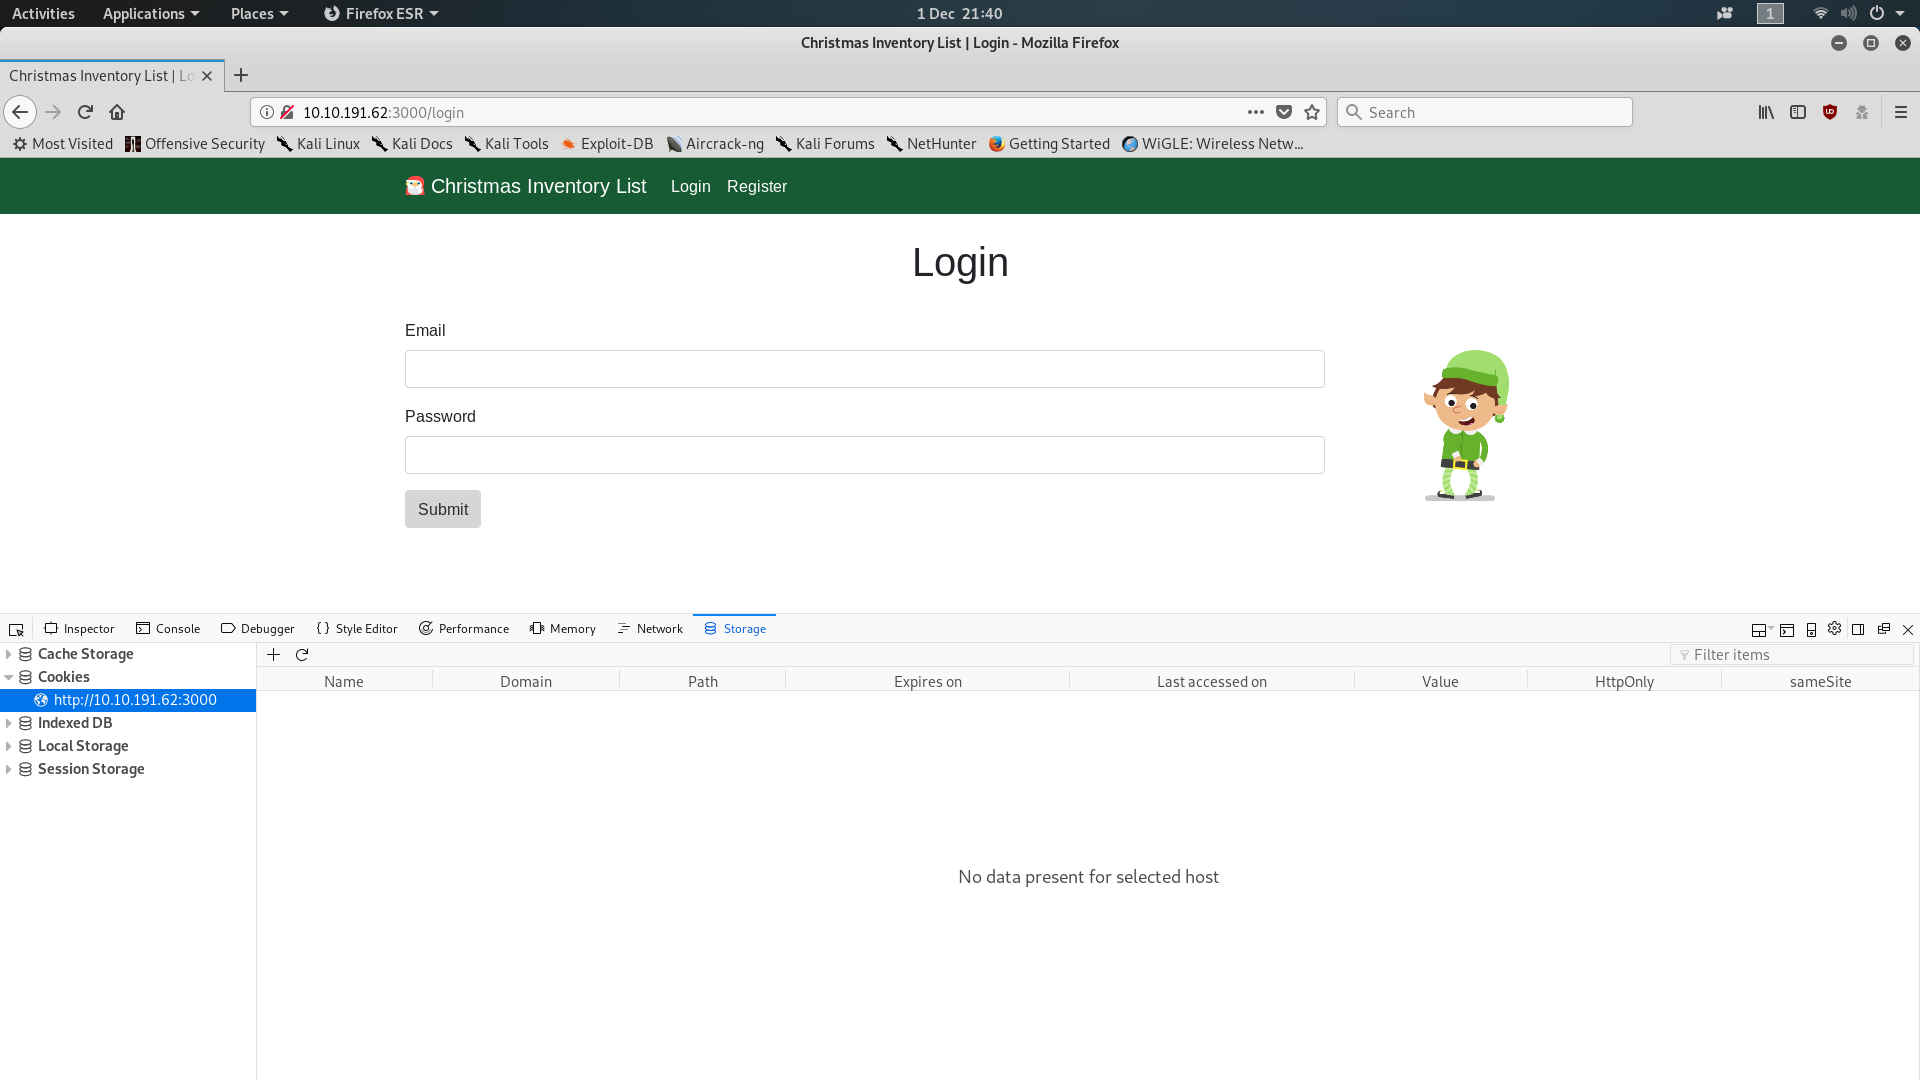 Screenshot showing that there are no cookies